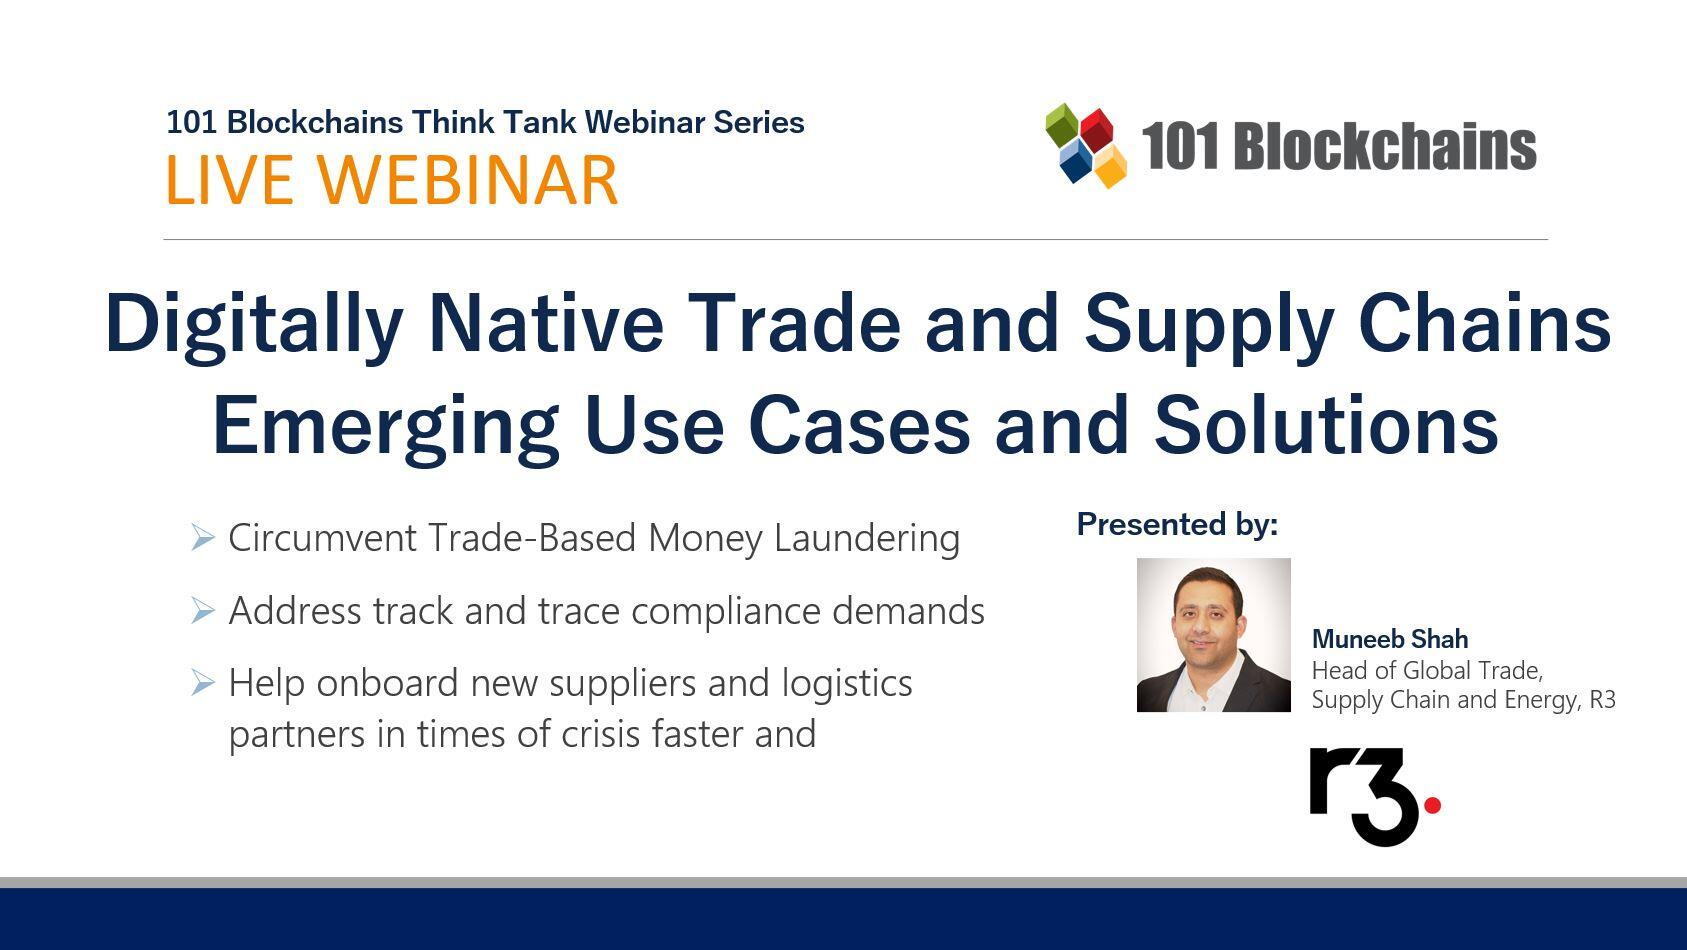 Trade and Supply Chains webinar